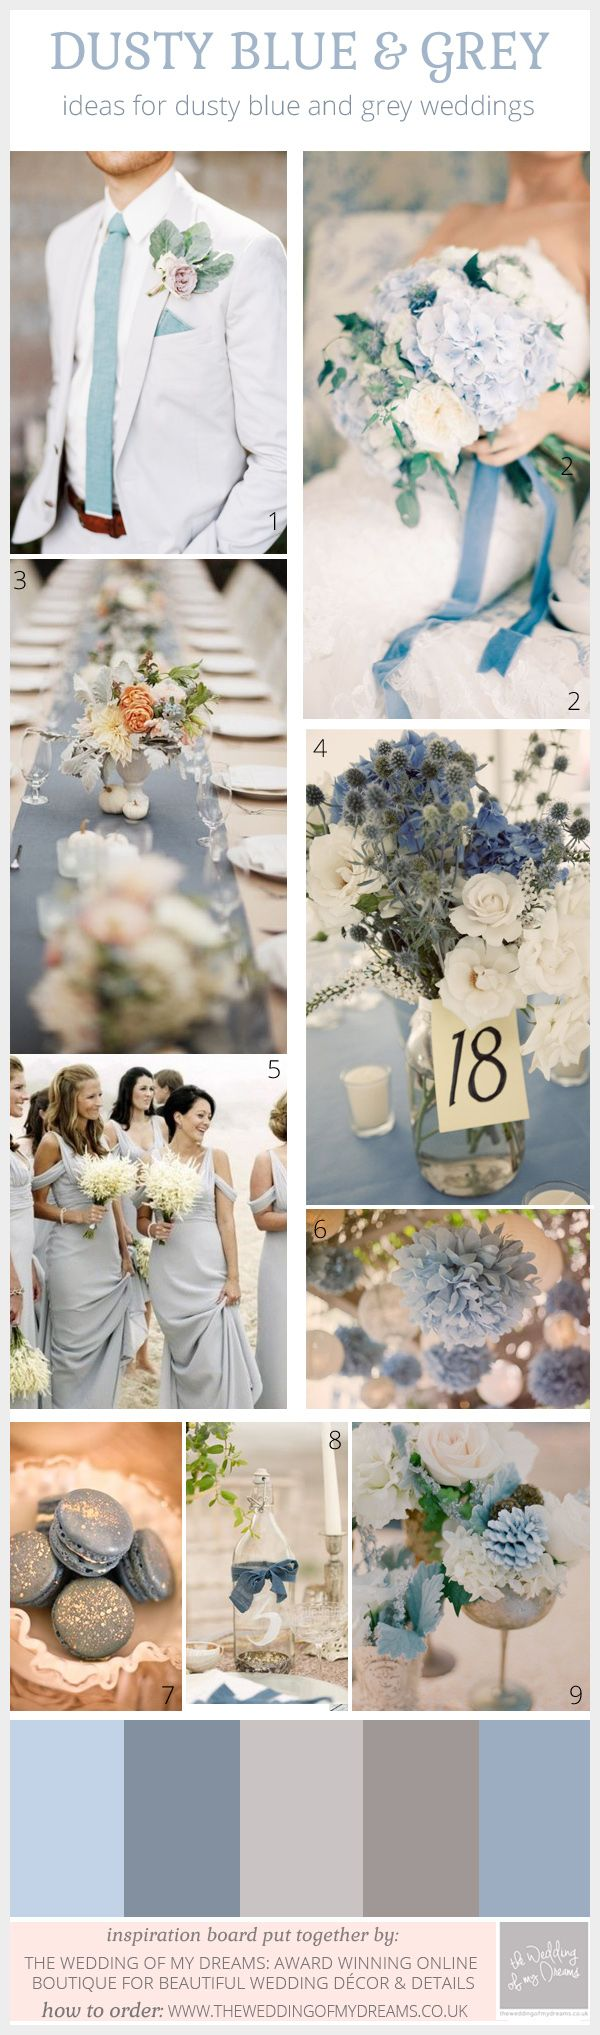 Dusty Blue And Grey Wedding Ideas & Inspiration | Pinterest | Dusty ...